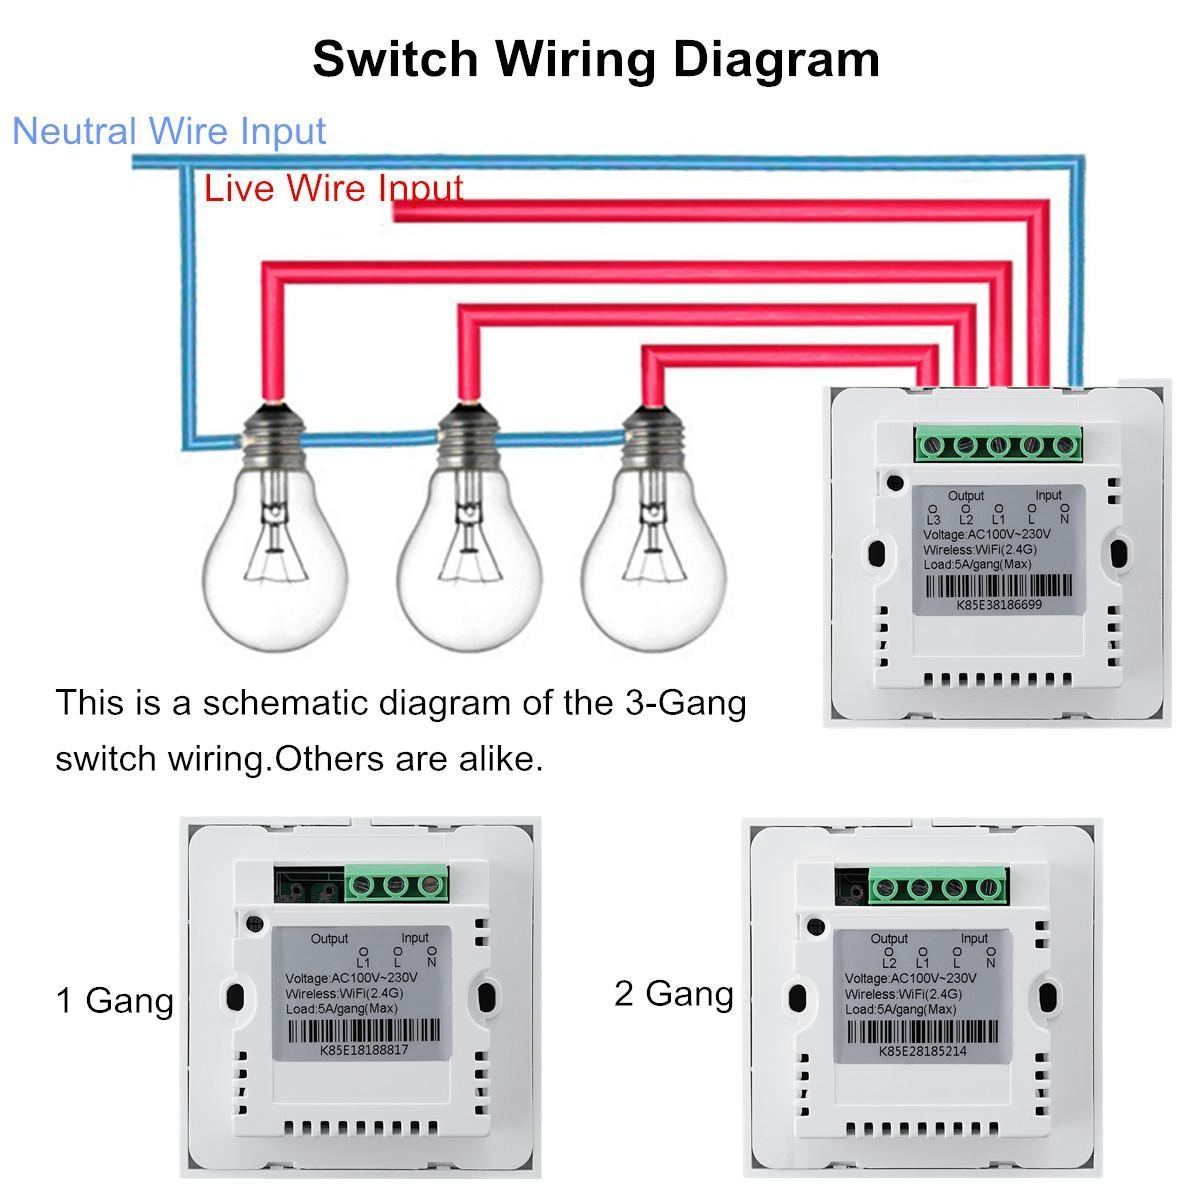 Switch Wiring Diagram How To Wire A Light Switch Wiring Diagram 2 Gang